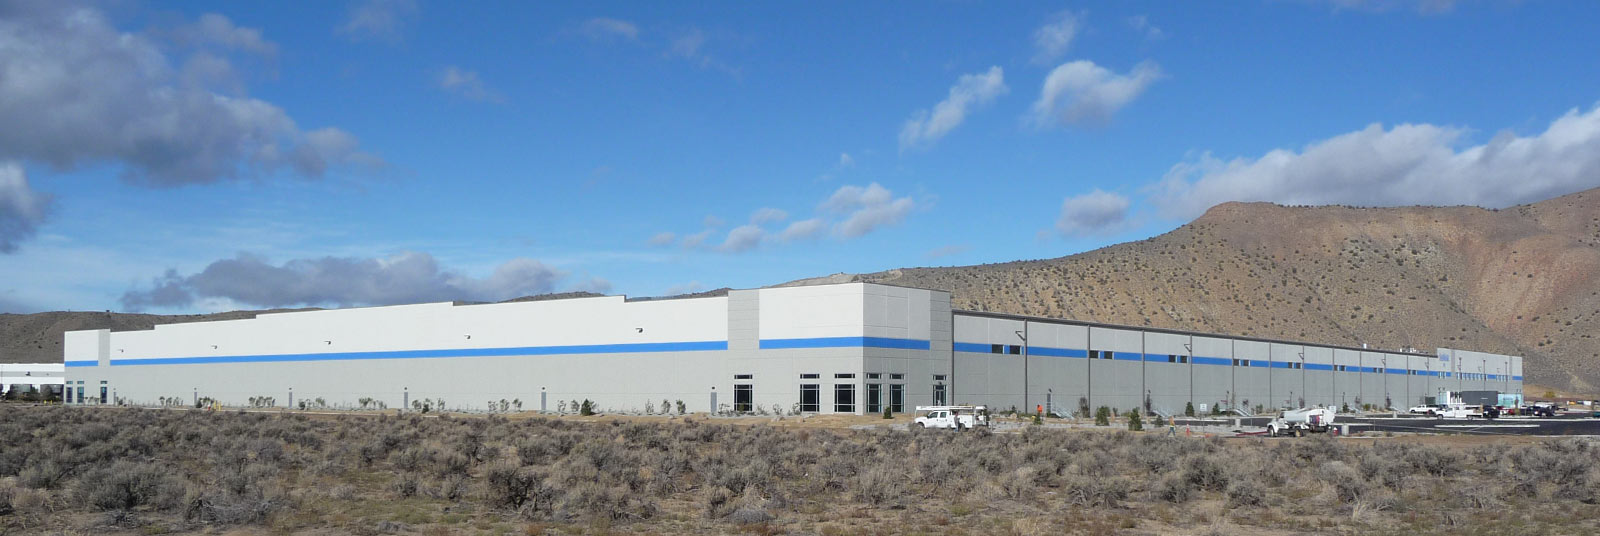 View of the large SanMar distribution center in Spanish Springs, Nevada.